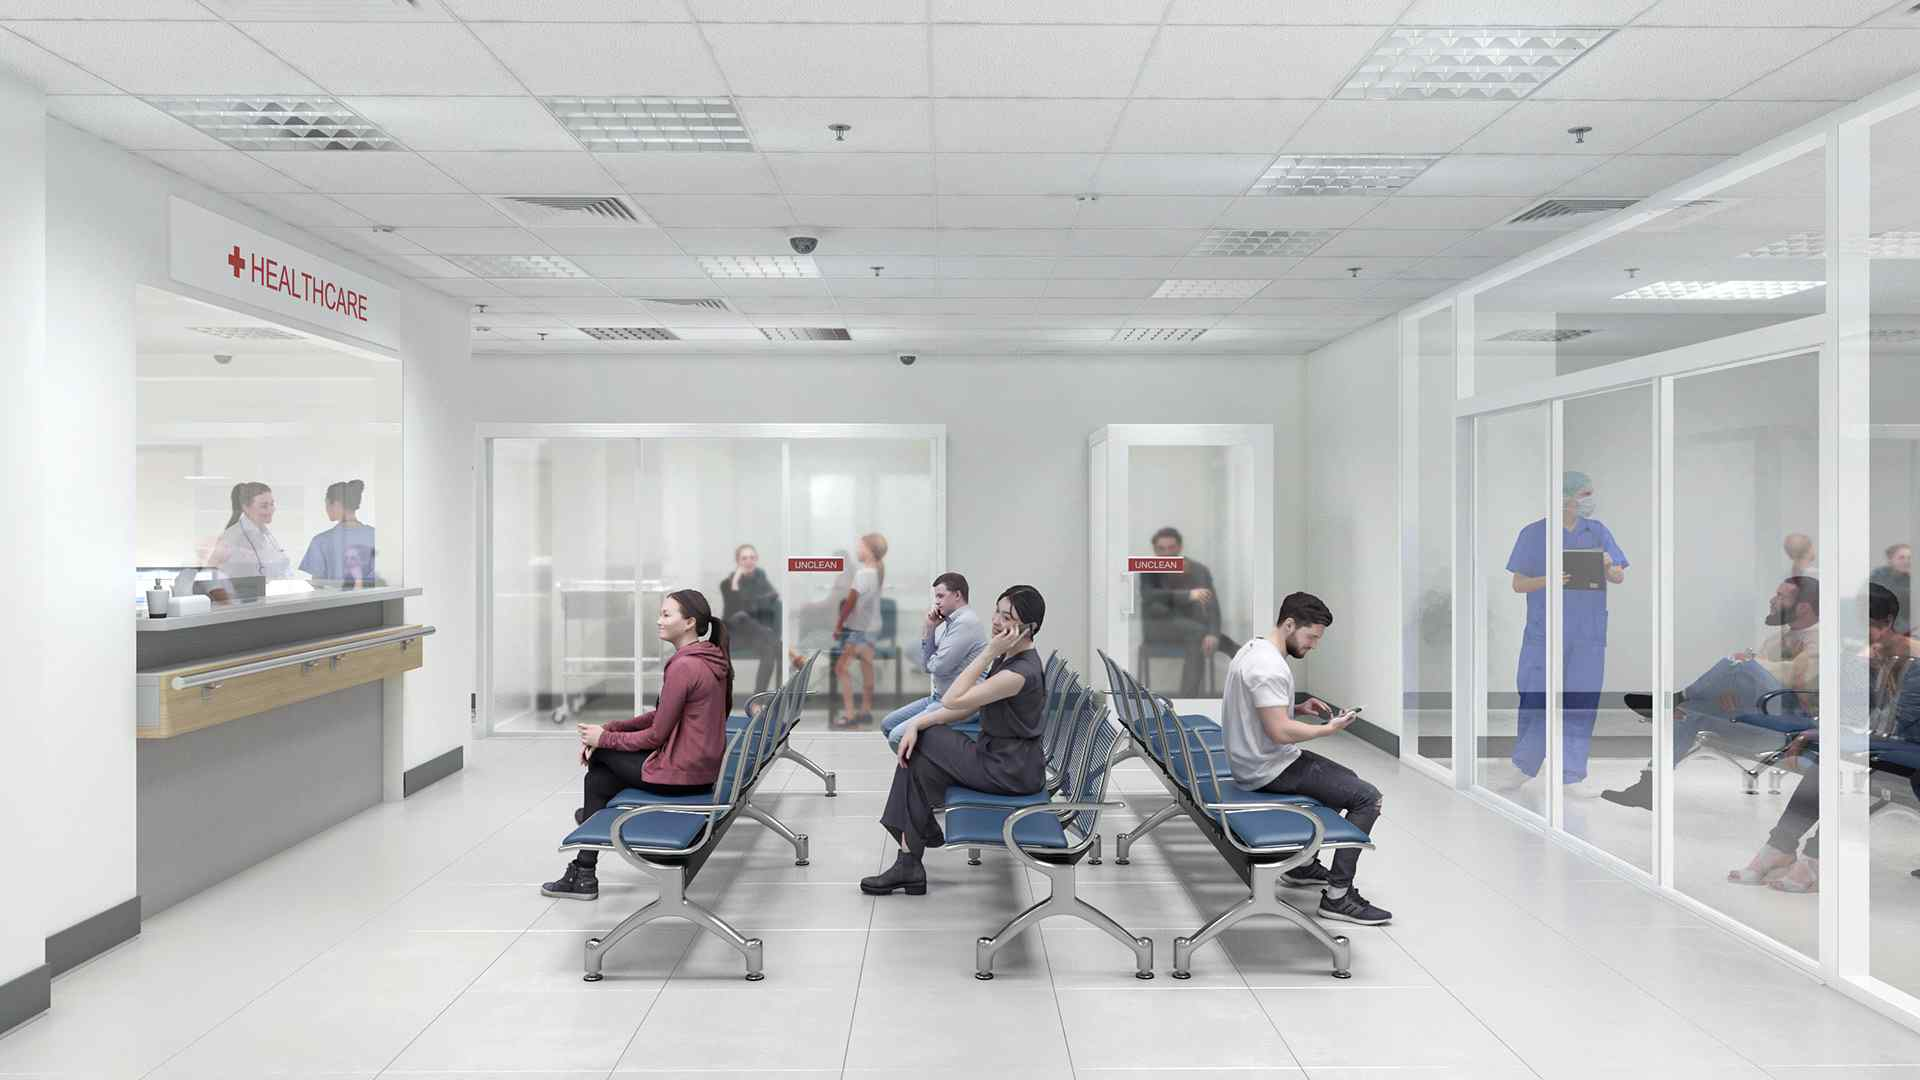 wellness glass walls health safety covid waiting room